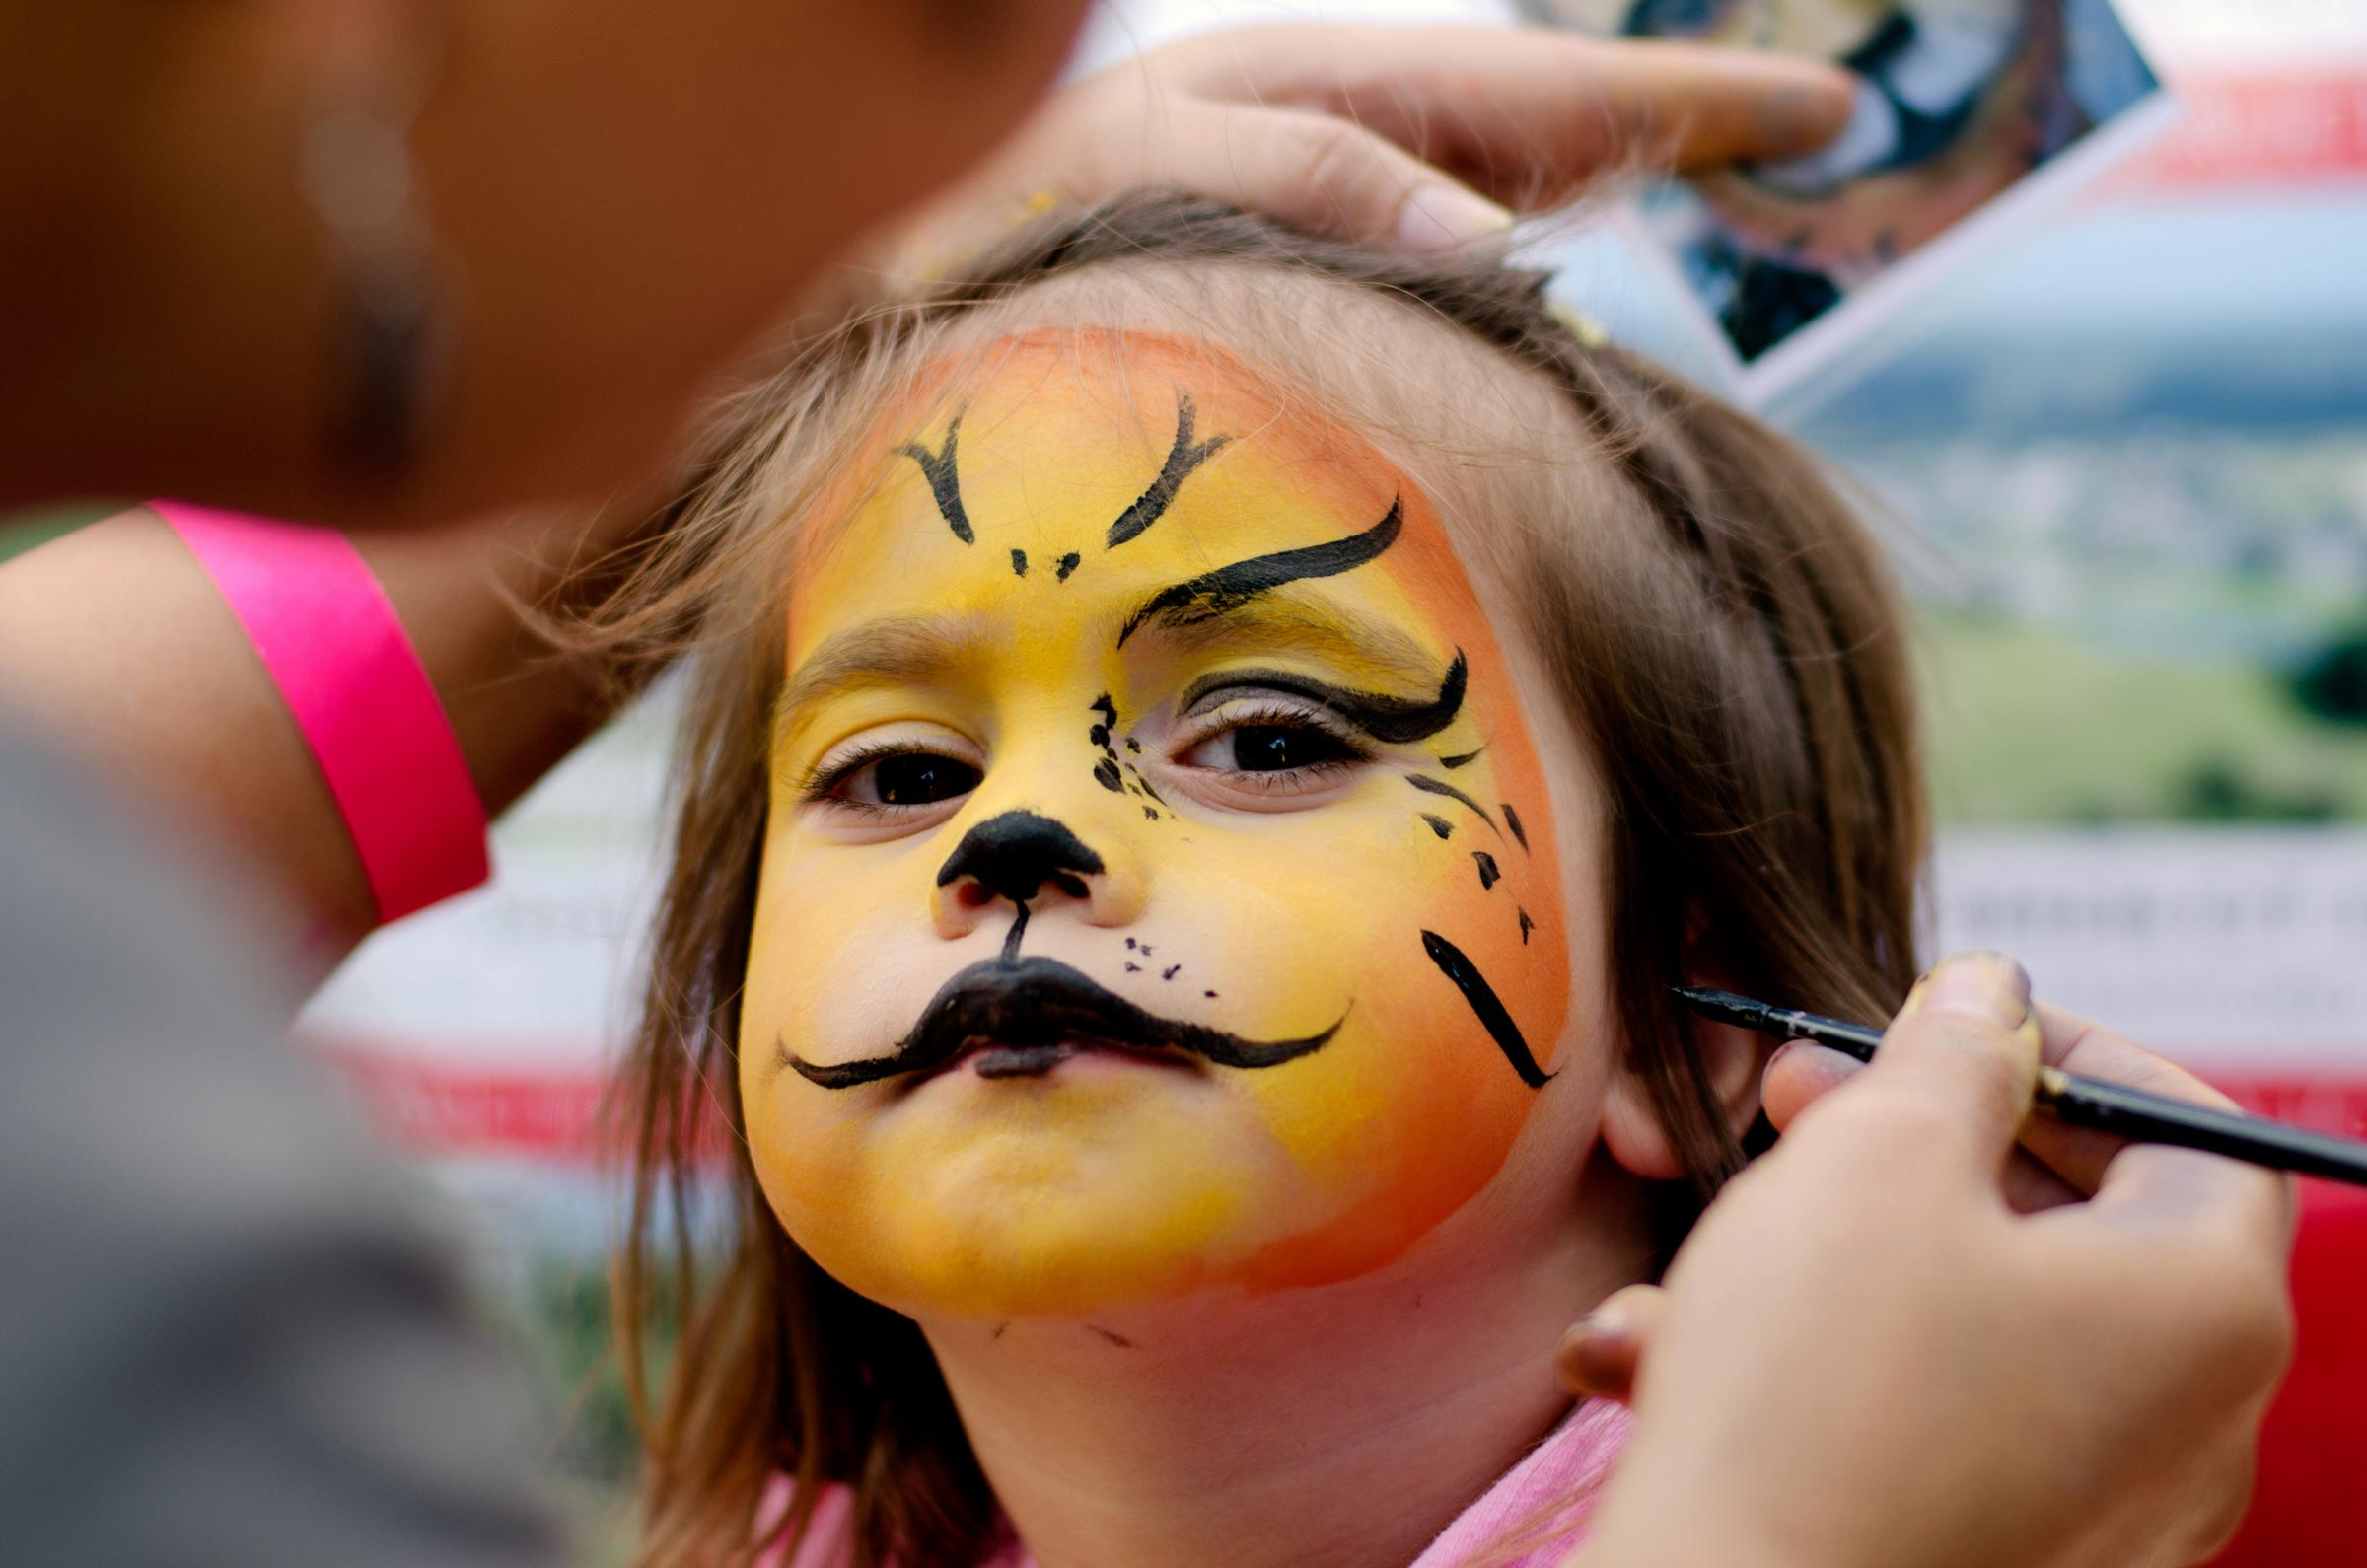 Children can have their faces painted this weekend at Cassiobury Park